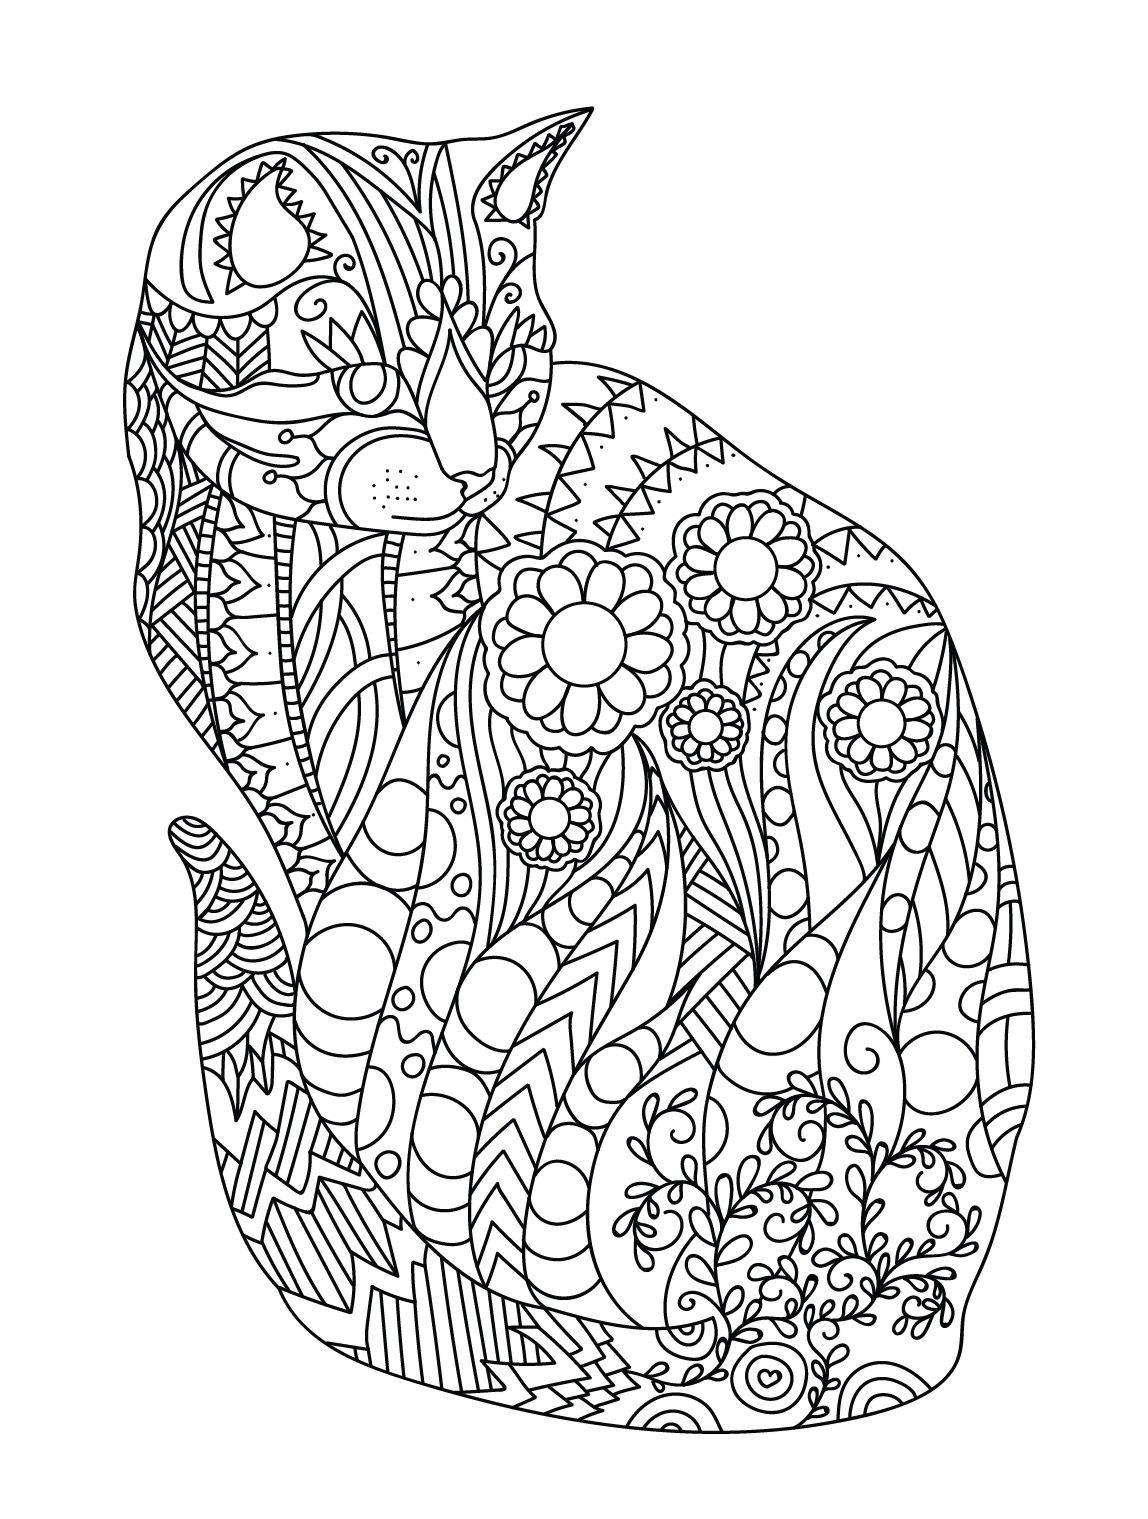 Cat | Colorish: coloring book for adults mandala relax by ... | free printable animal mandala coloring pages for adults